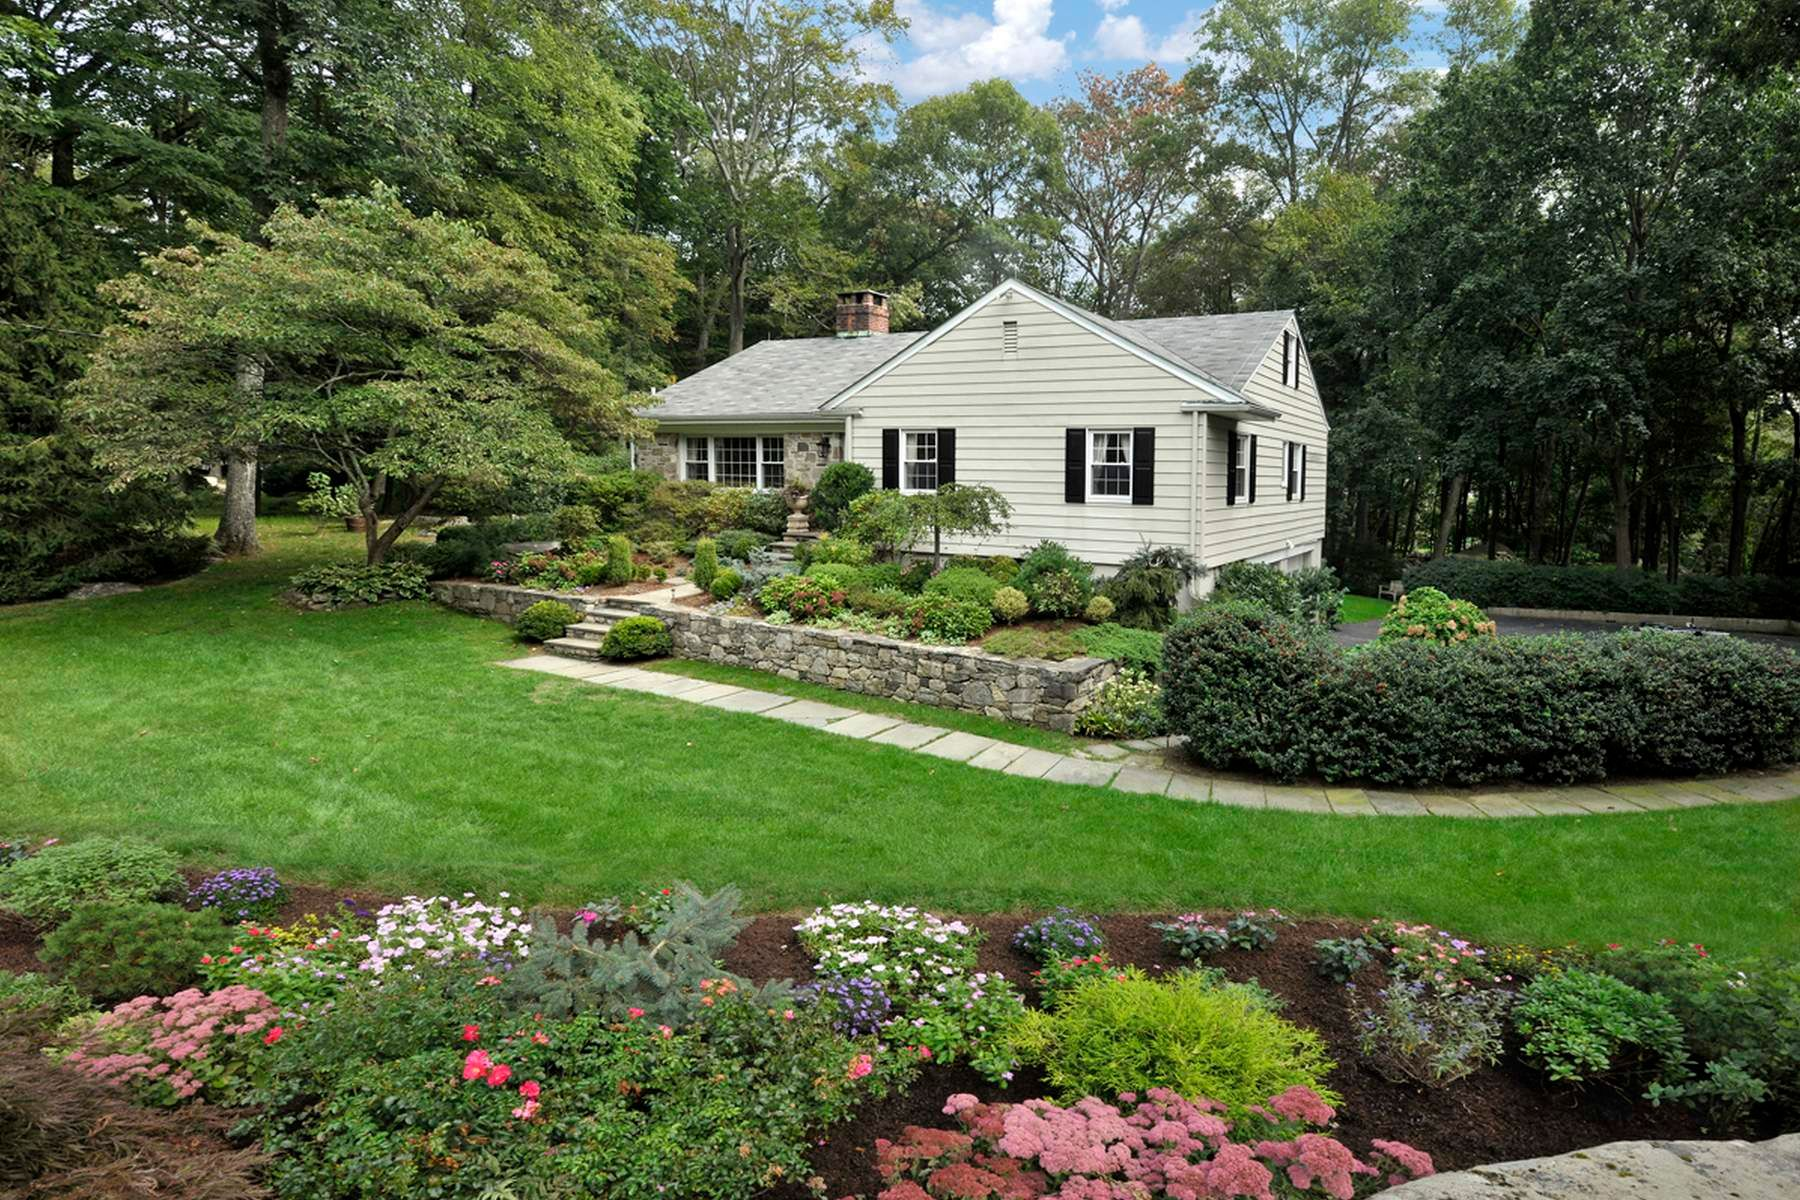 Single Family Home for Sale at 7 Cottontail Road 7 Cottontail Road Cos Cob, Connecticut 06807 United States